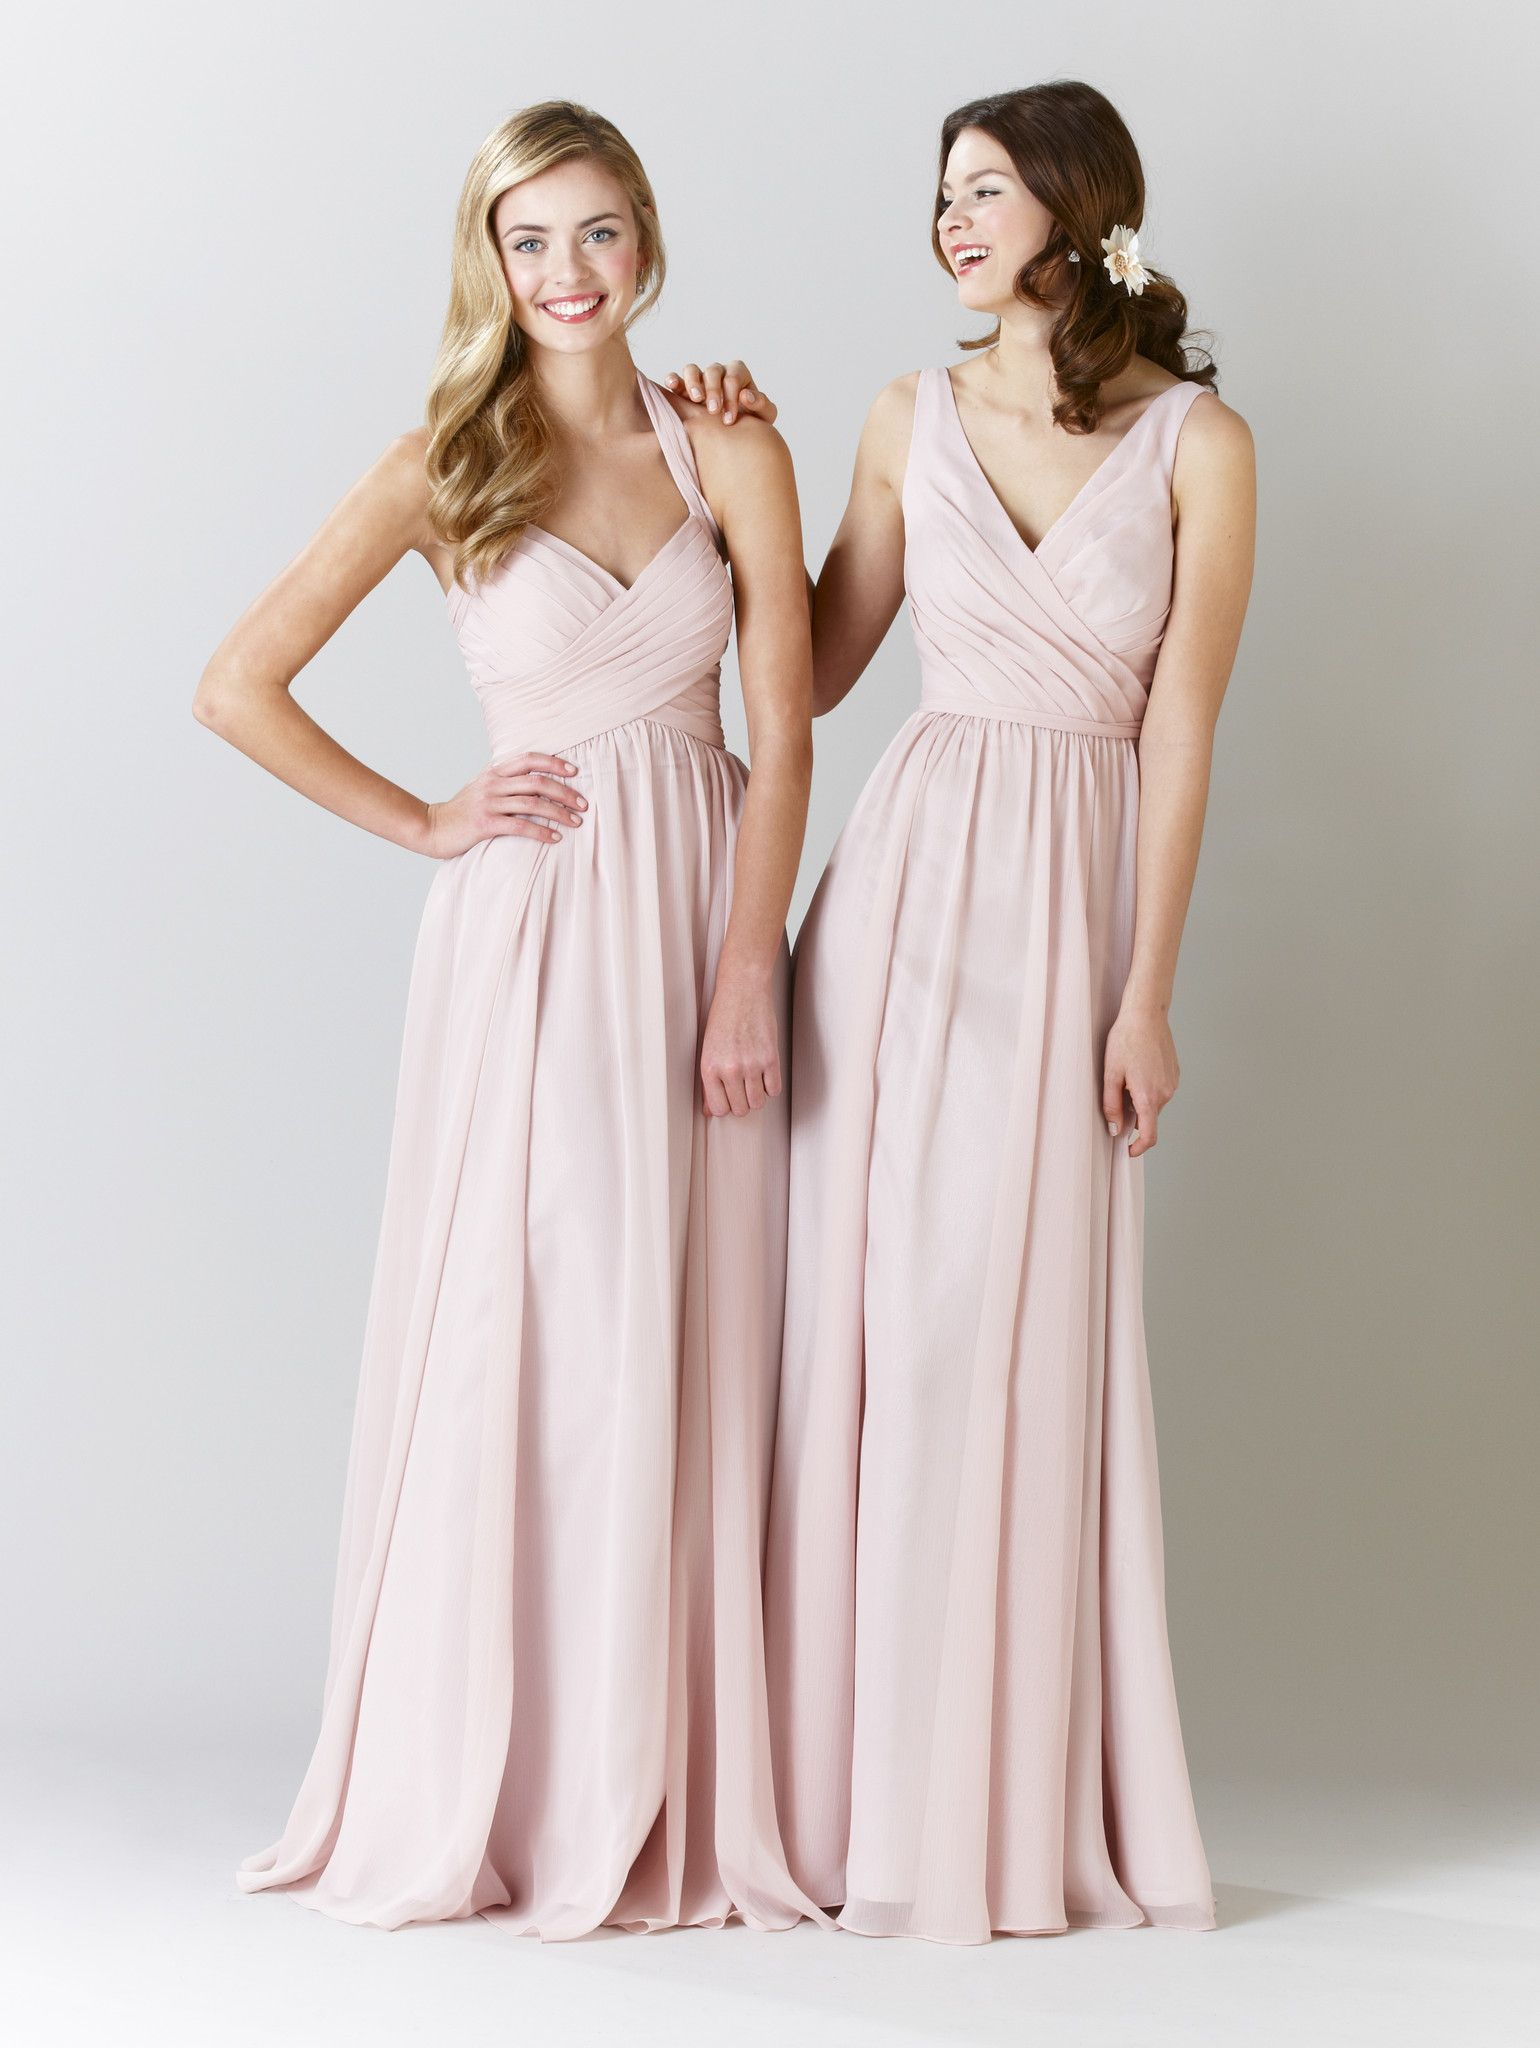 Mix and match long chiffon blush pink bridesmaid dresses for a fun anna blush bridesmaid dresses longpale pink ombrellifo Images